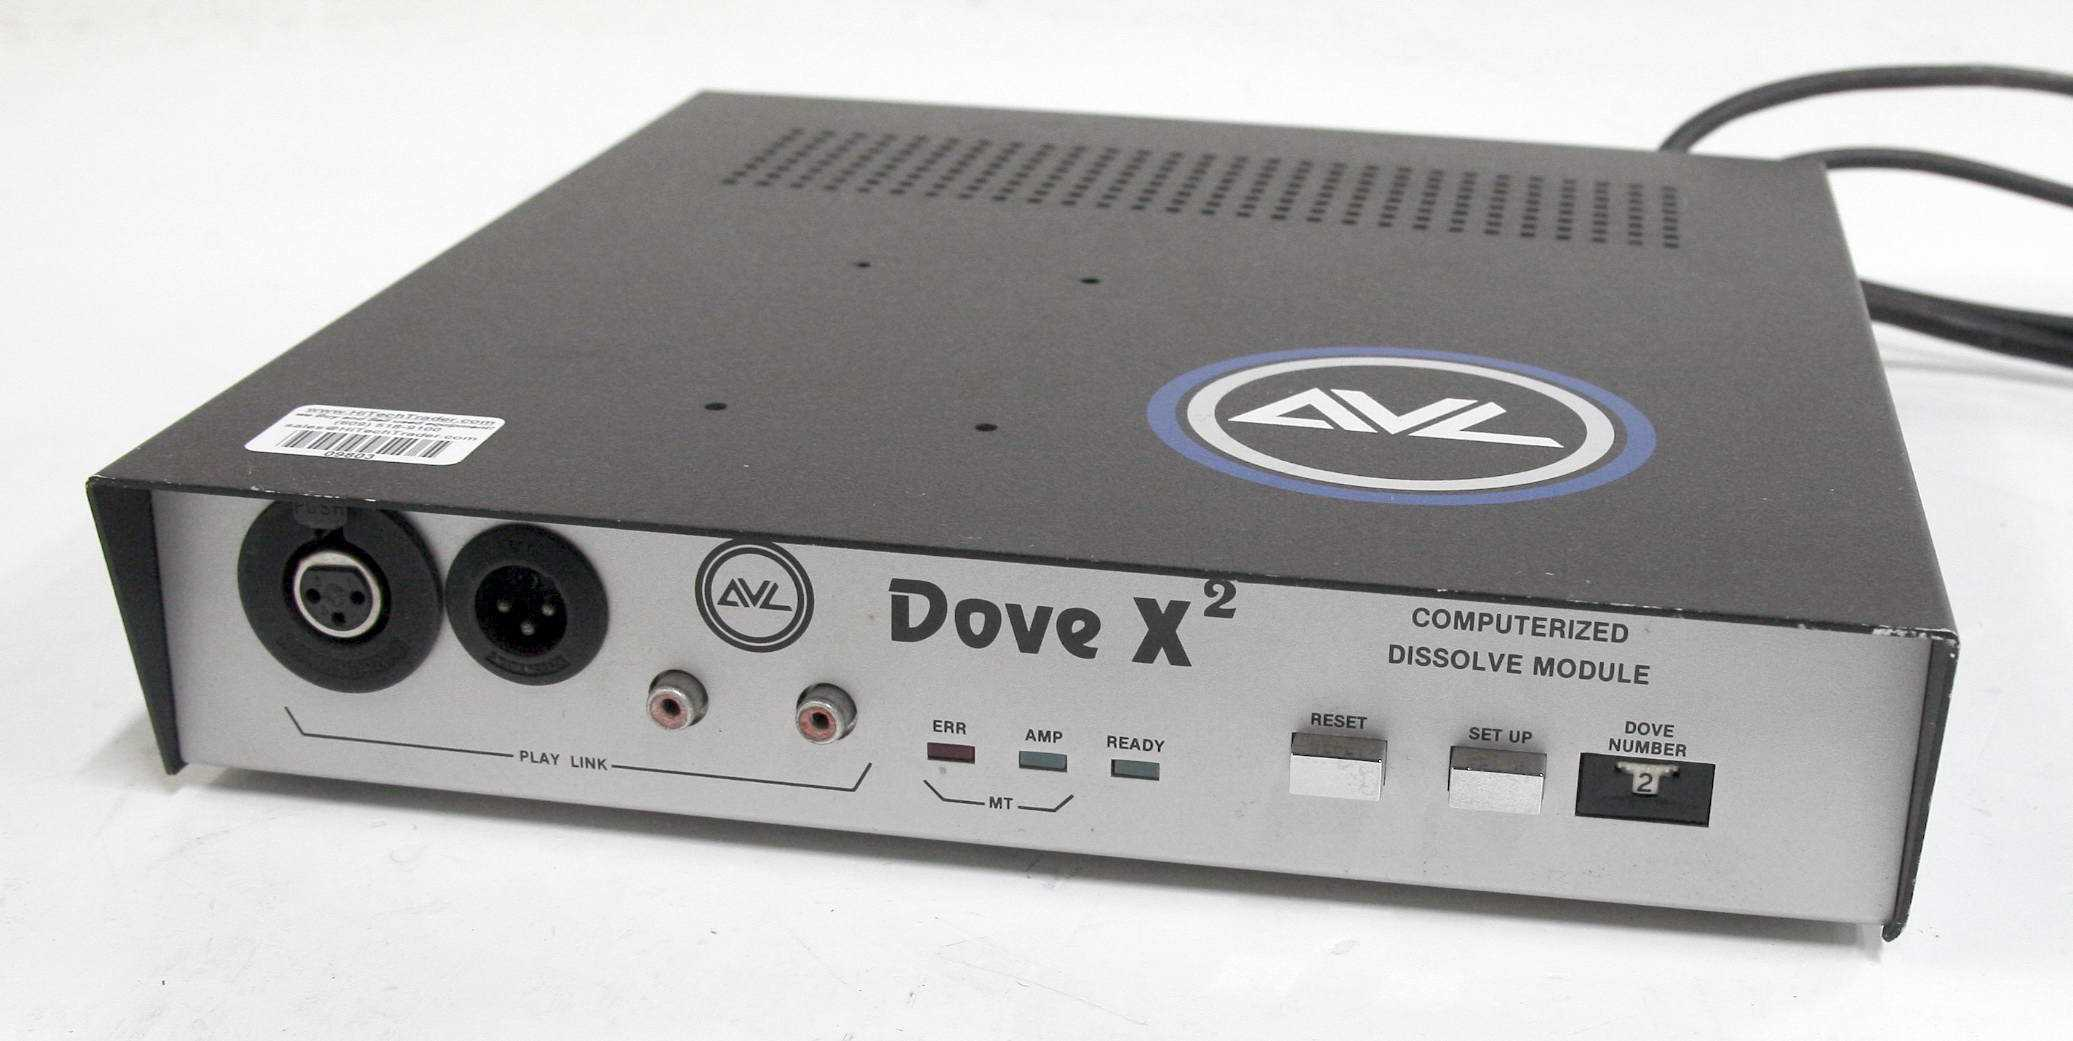 AVL Dove X-2 Computerized Diisove Module